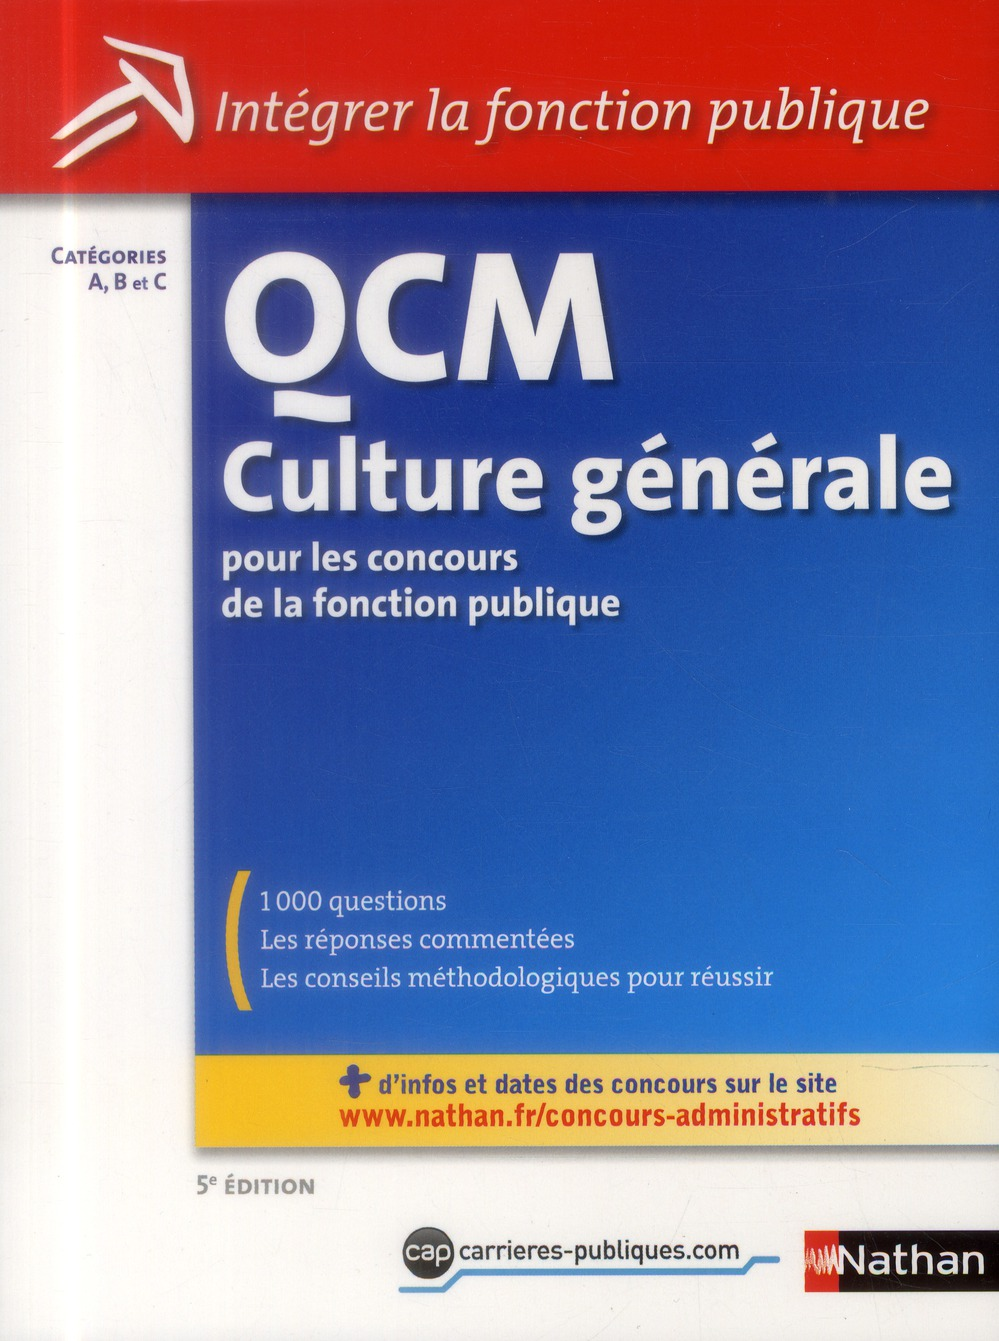 QCM CULTURE GENERALE CAT ABC